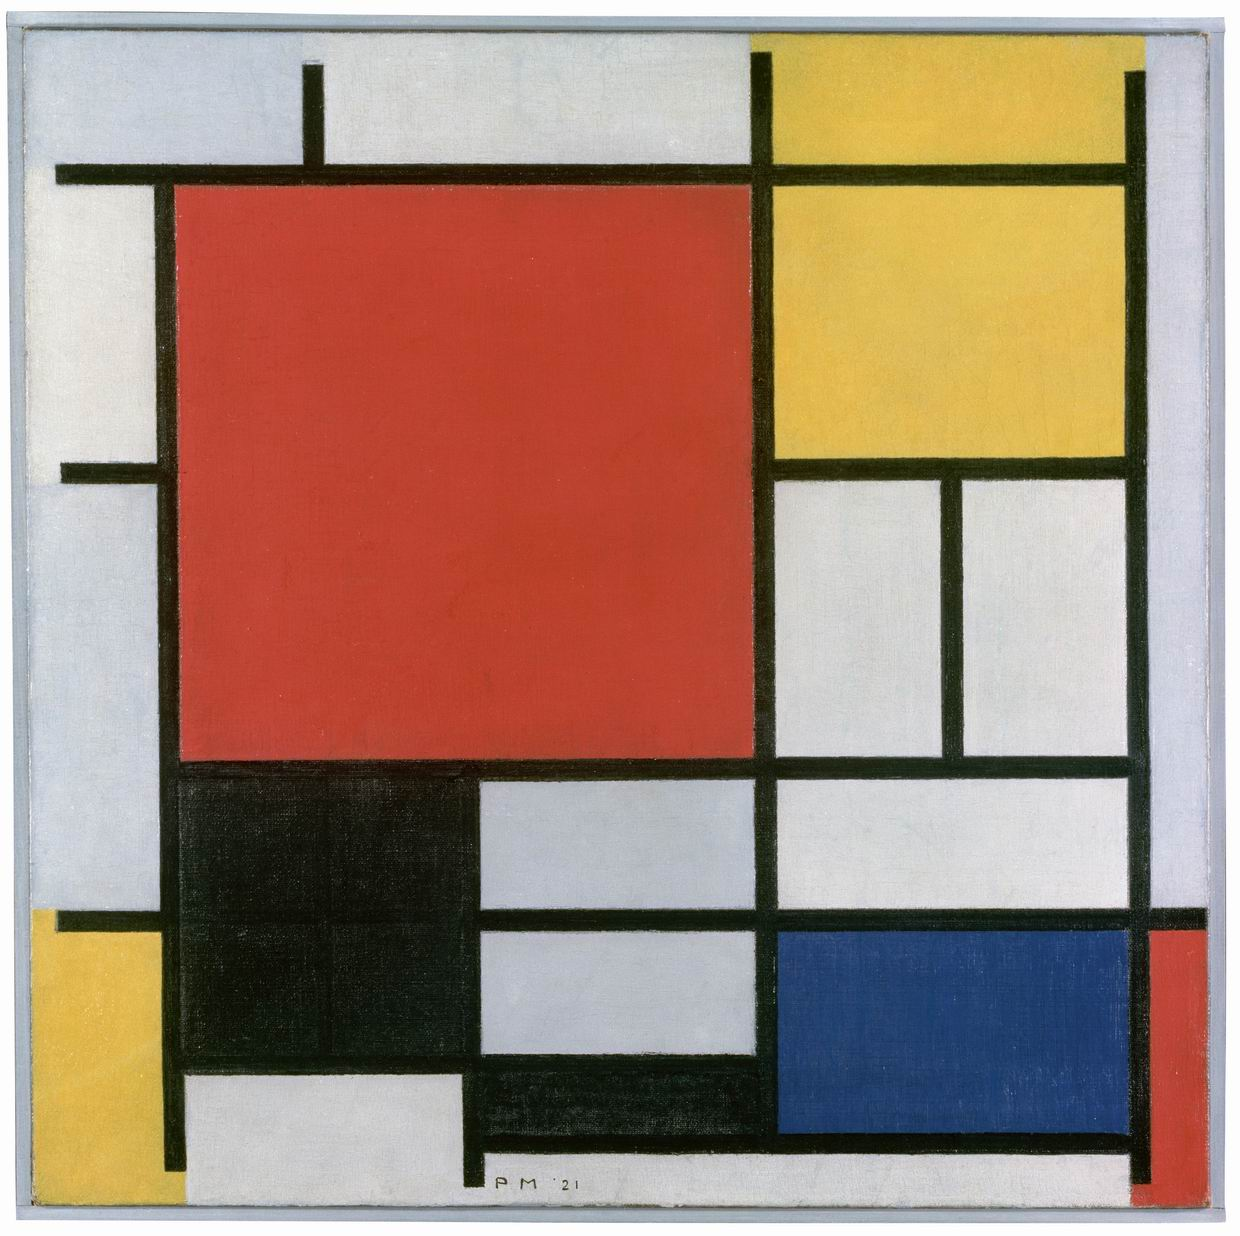 Catalogue no. SCH-1957-00710333329    Piet Mondriaan    Title: Composition with Large Red Plane, Yellow, Black, Gray and Blue Paintingscan van neg juni2006